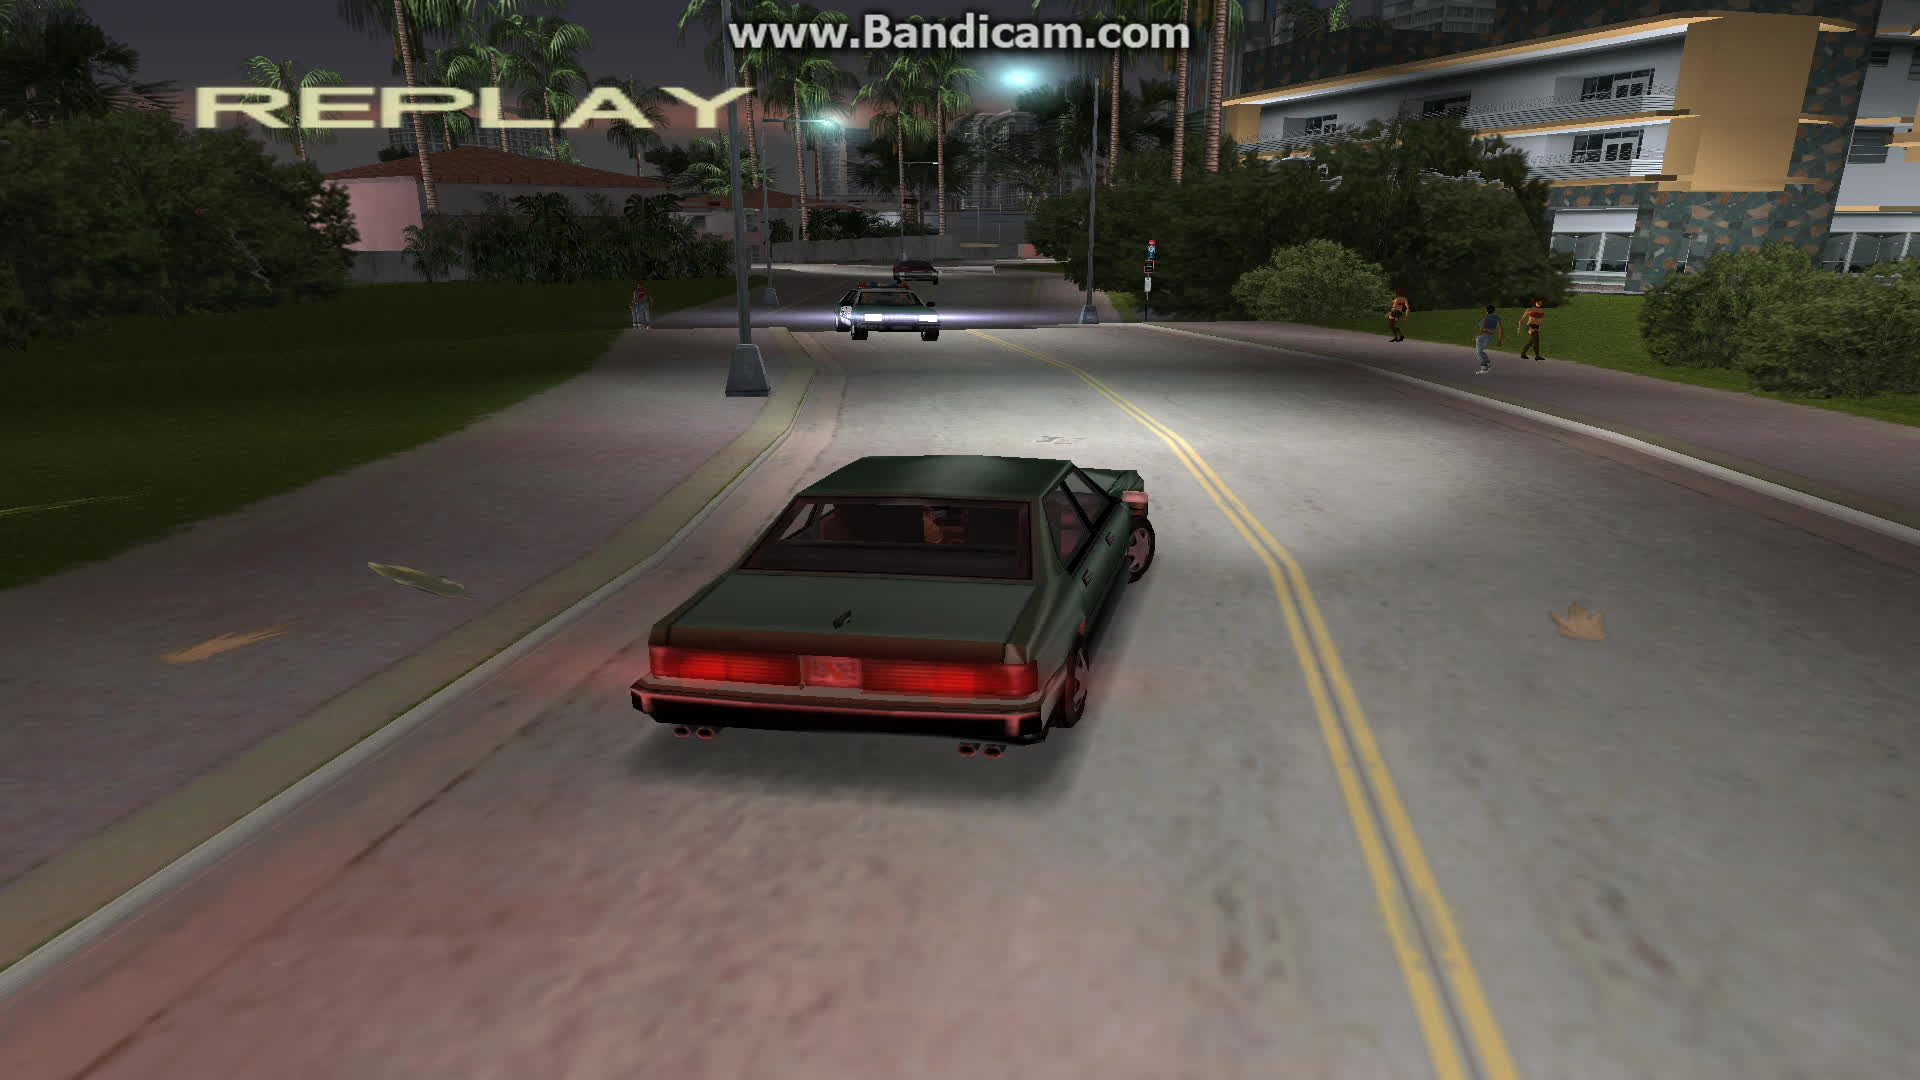 chaingame, driver, vicecity, The Driver GIFs